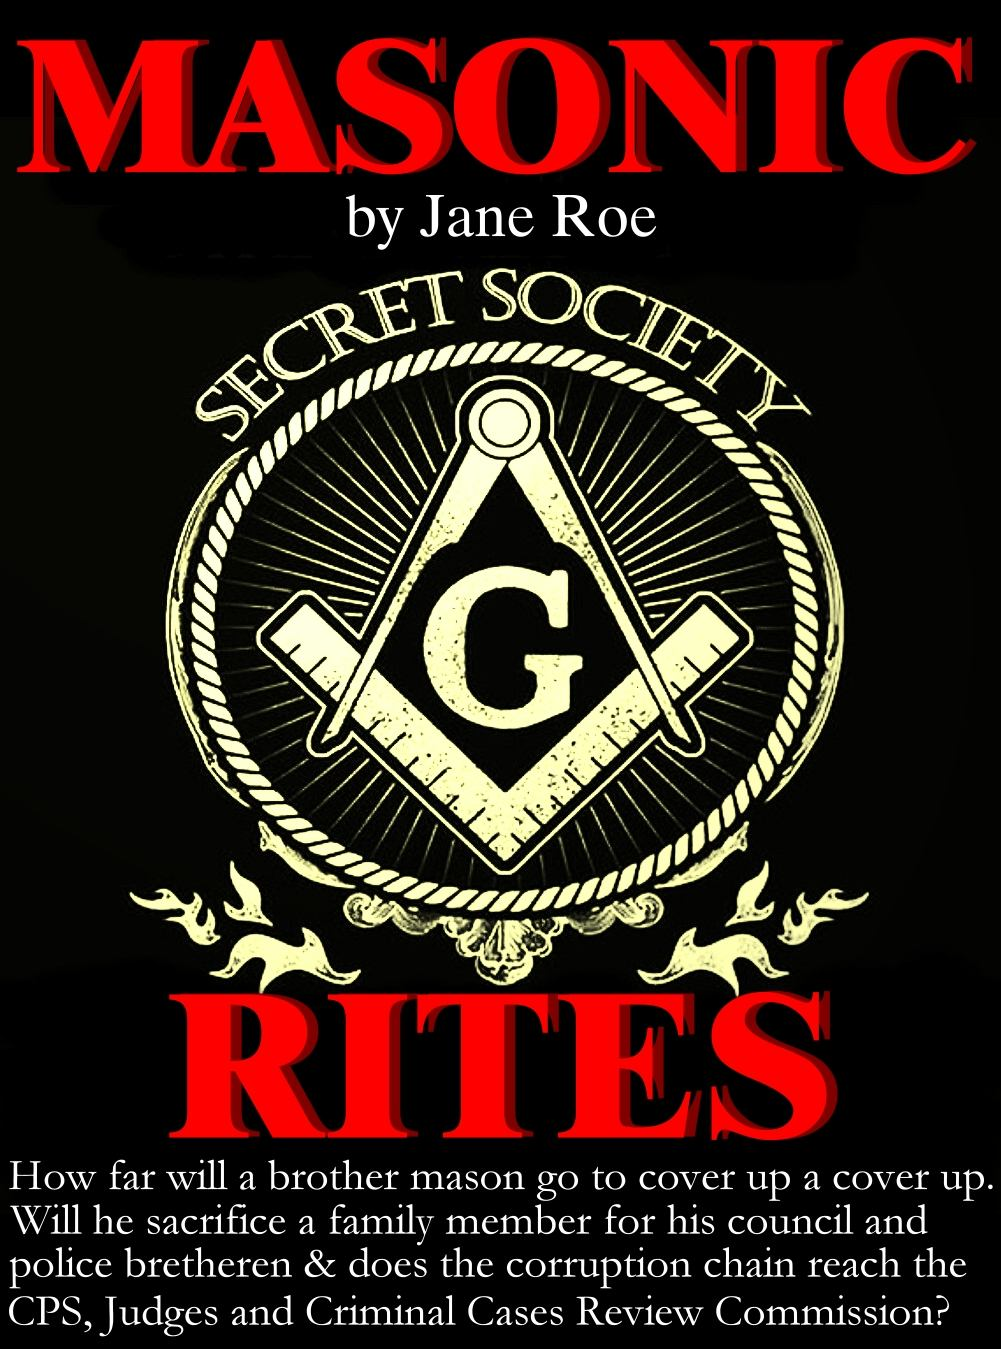 Masonic Rites of a Secret Society in a country plagued by corruption